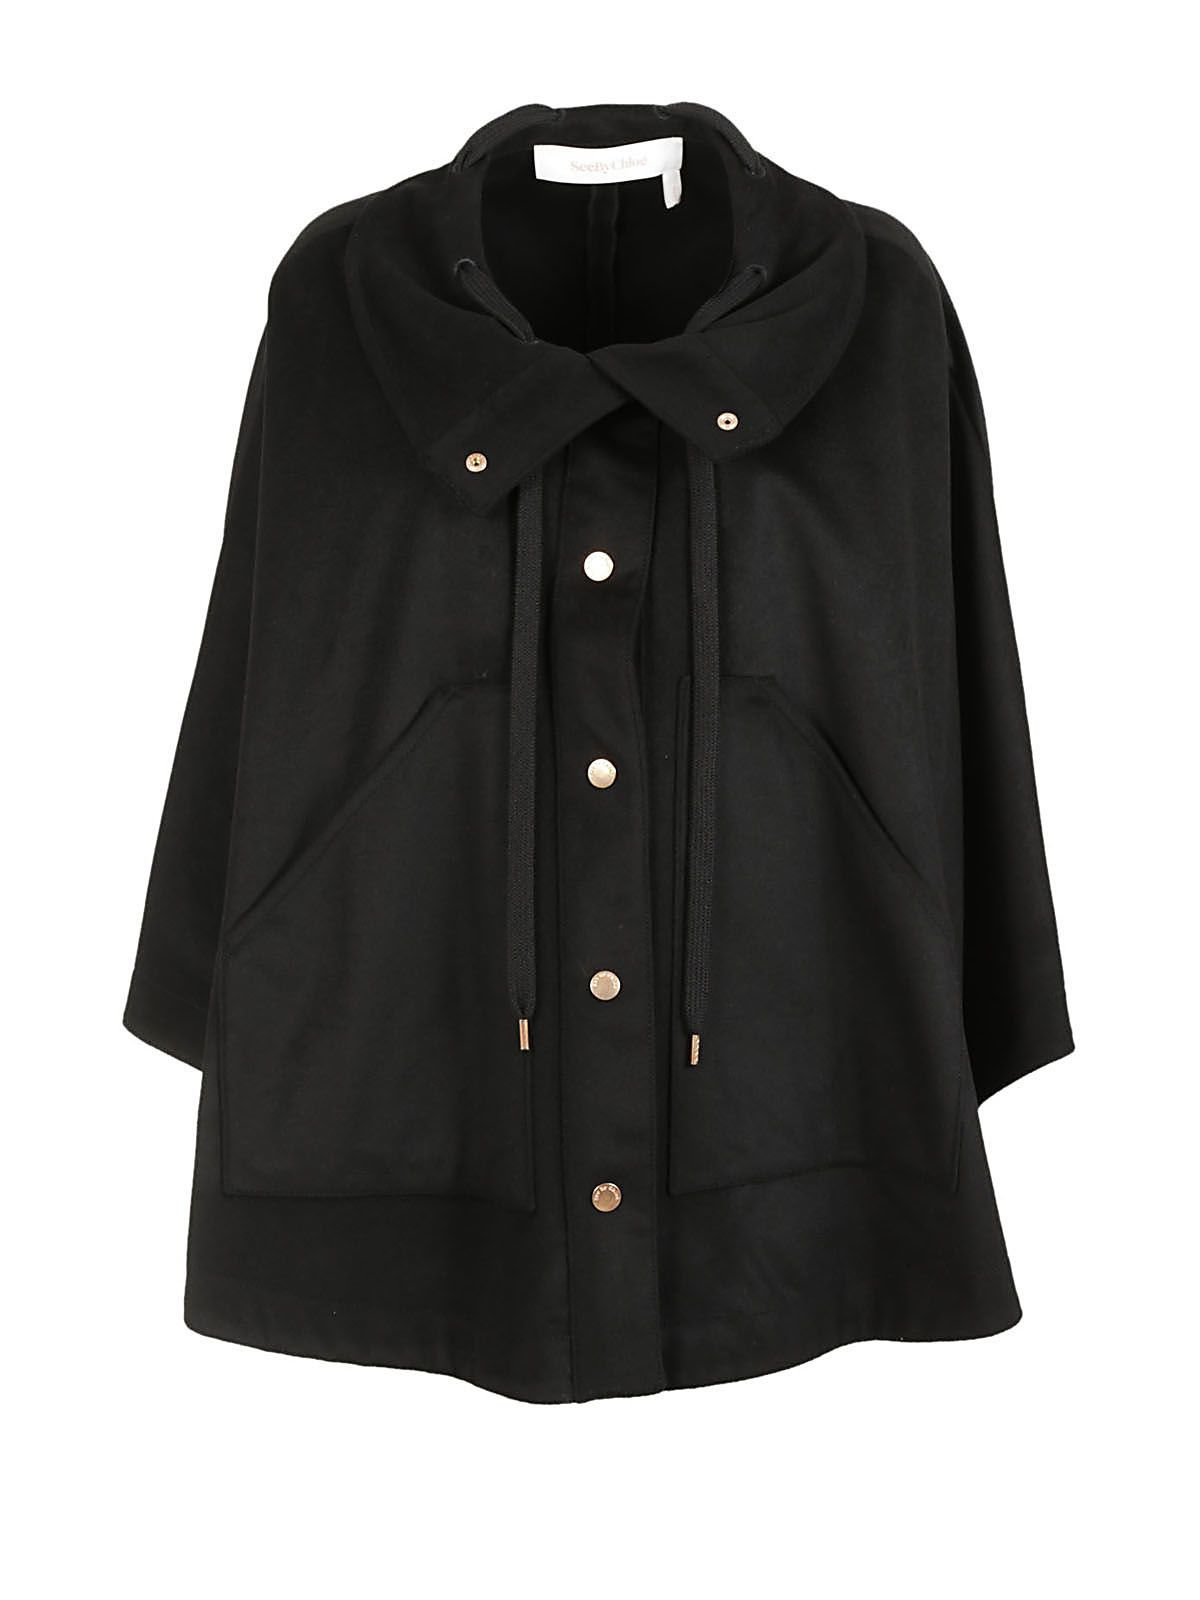 See By Chlo? Oversized Cape Coat